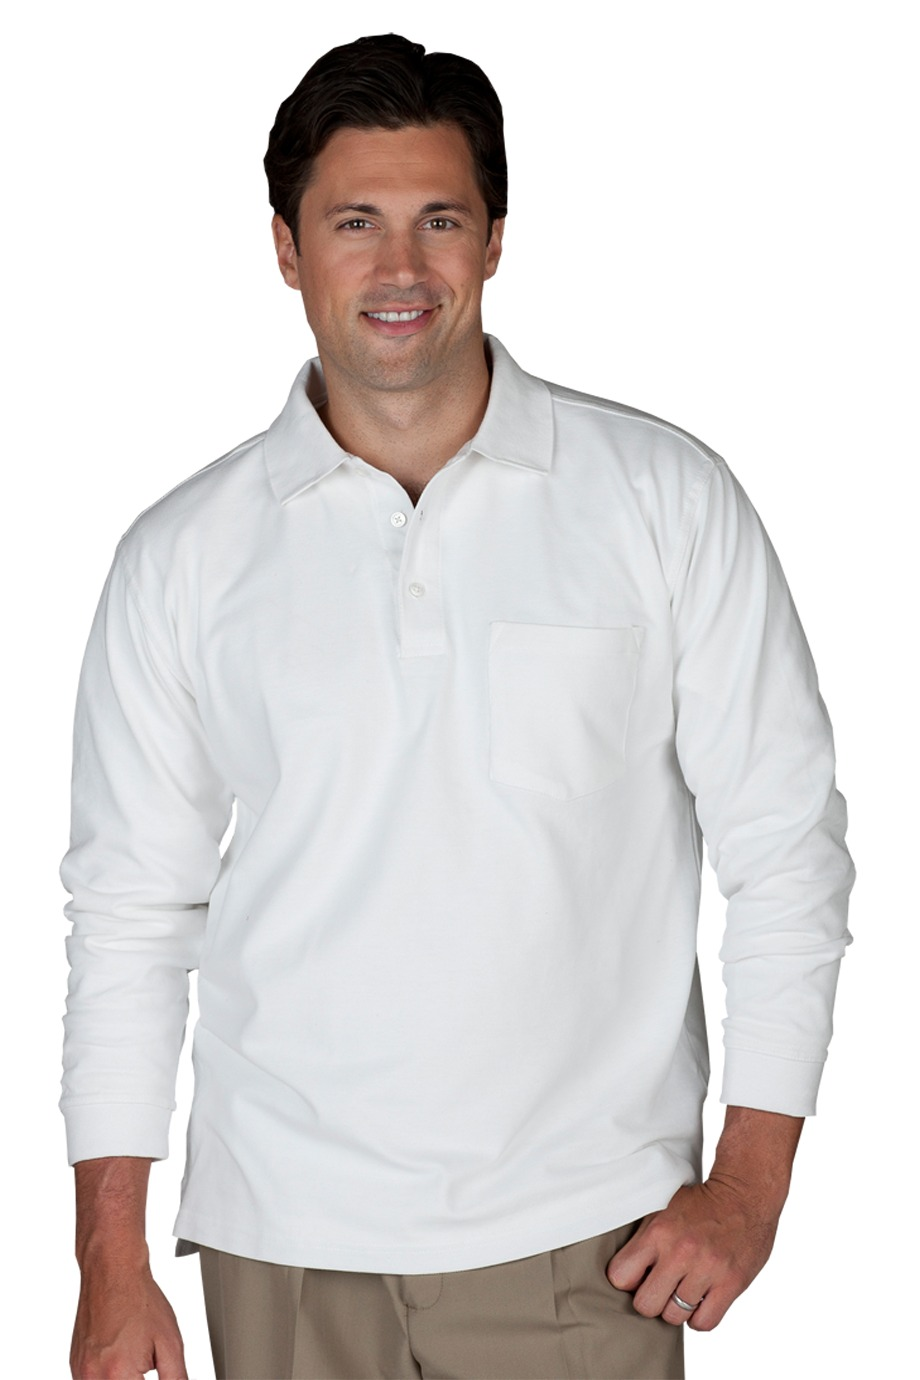 Edwards Garment 1525 - Unisex Long Sleeve Pique Polo with Pockets